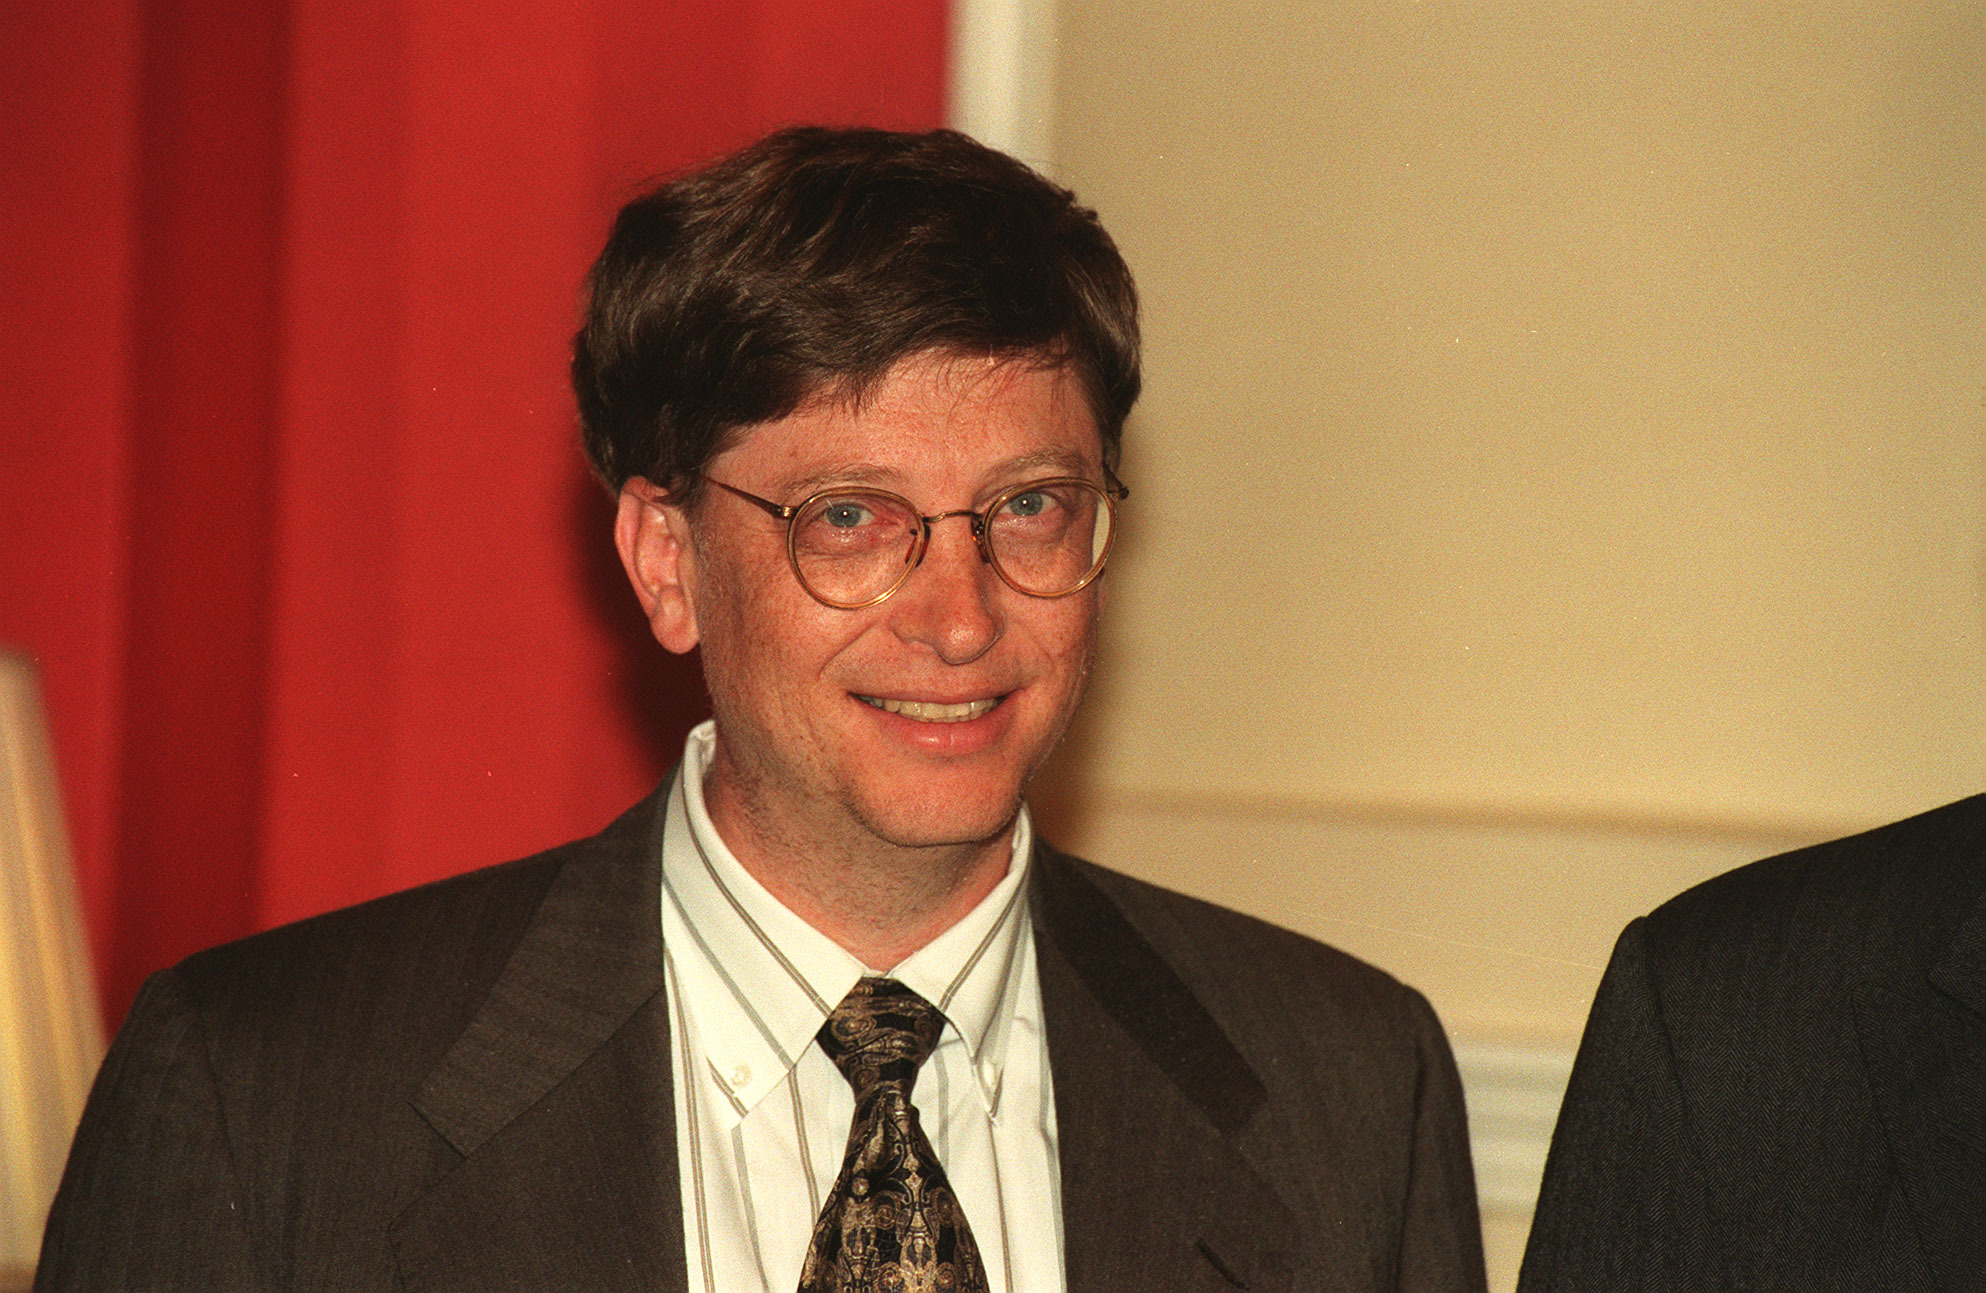 Even Bill Gates uses an Android phone now